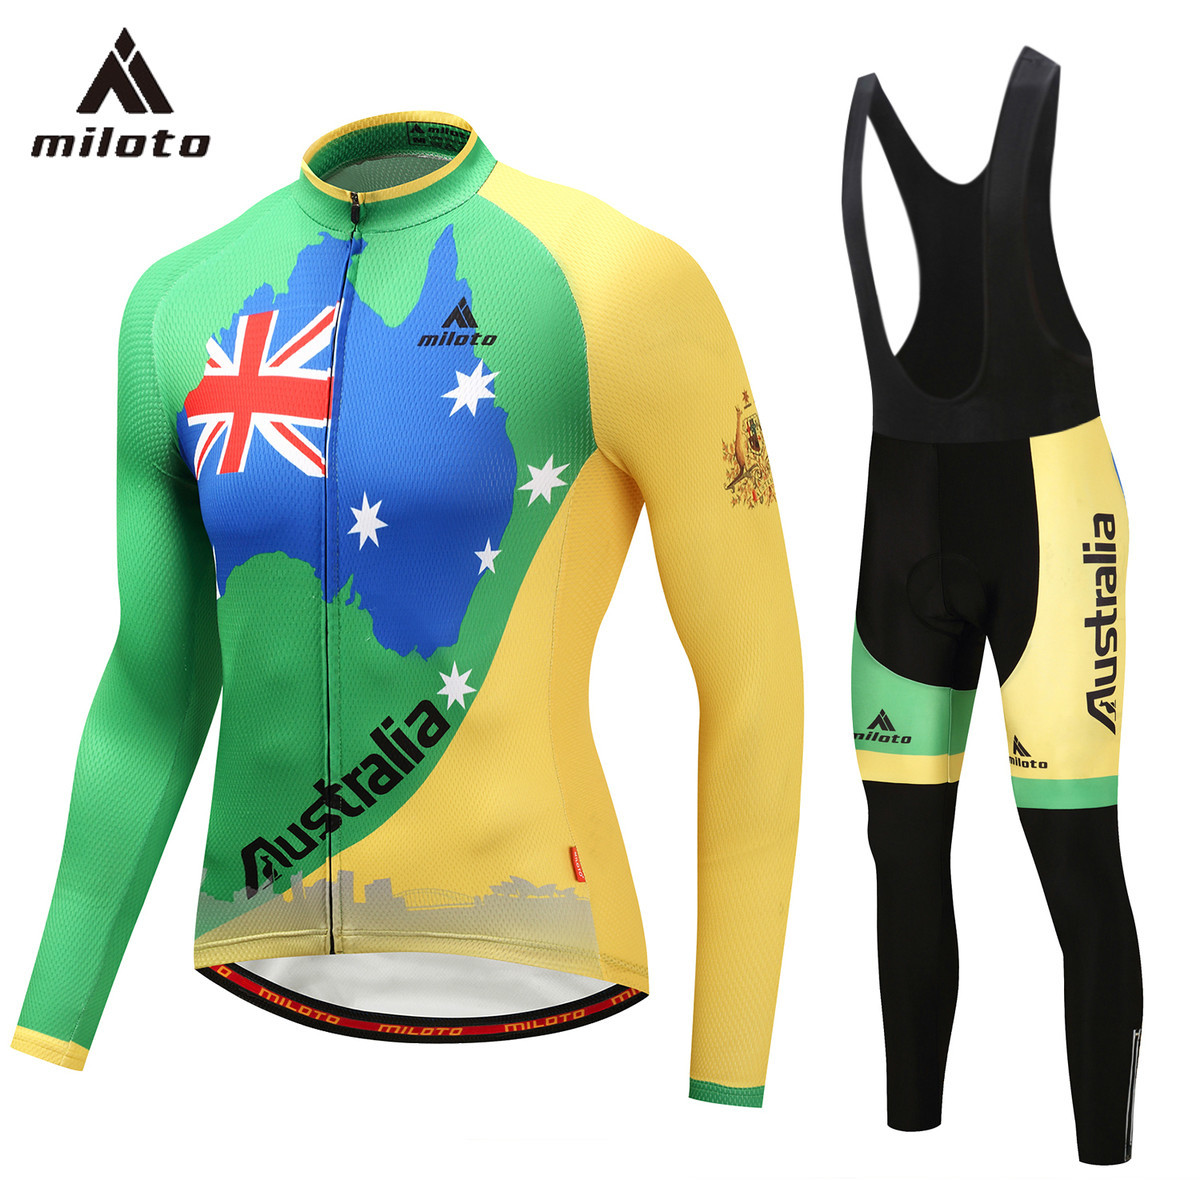 MILOTO Thin Long Sleeve Bike Clothing High Quality Complete Cycling Downhill Baby Clothes